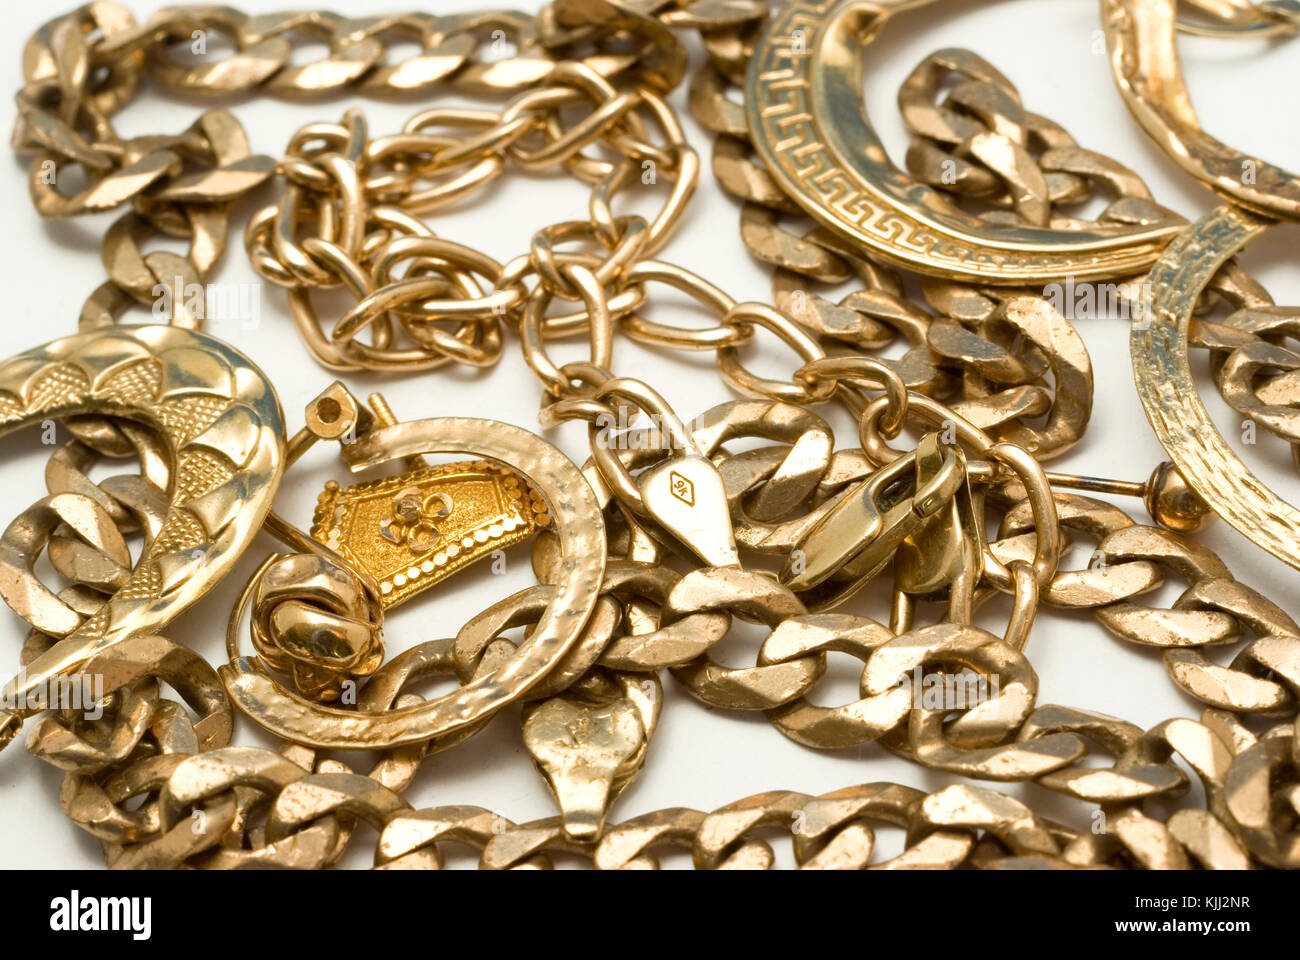 Scrap Gold - Stock Image